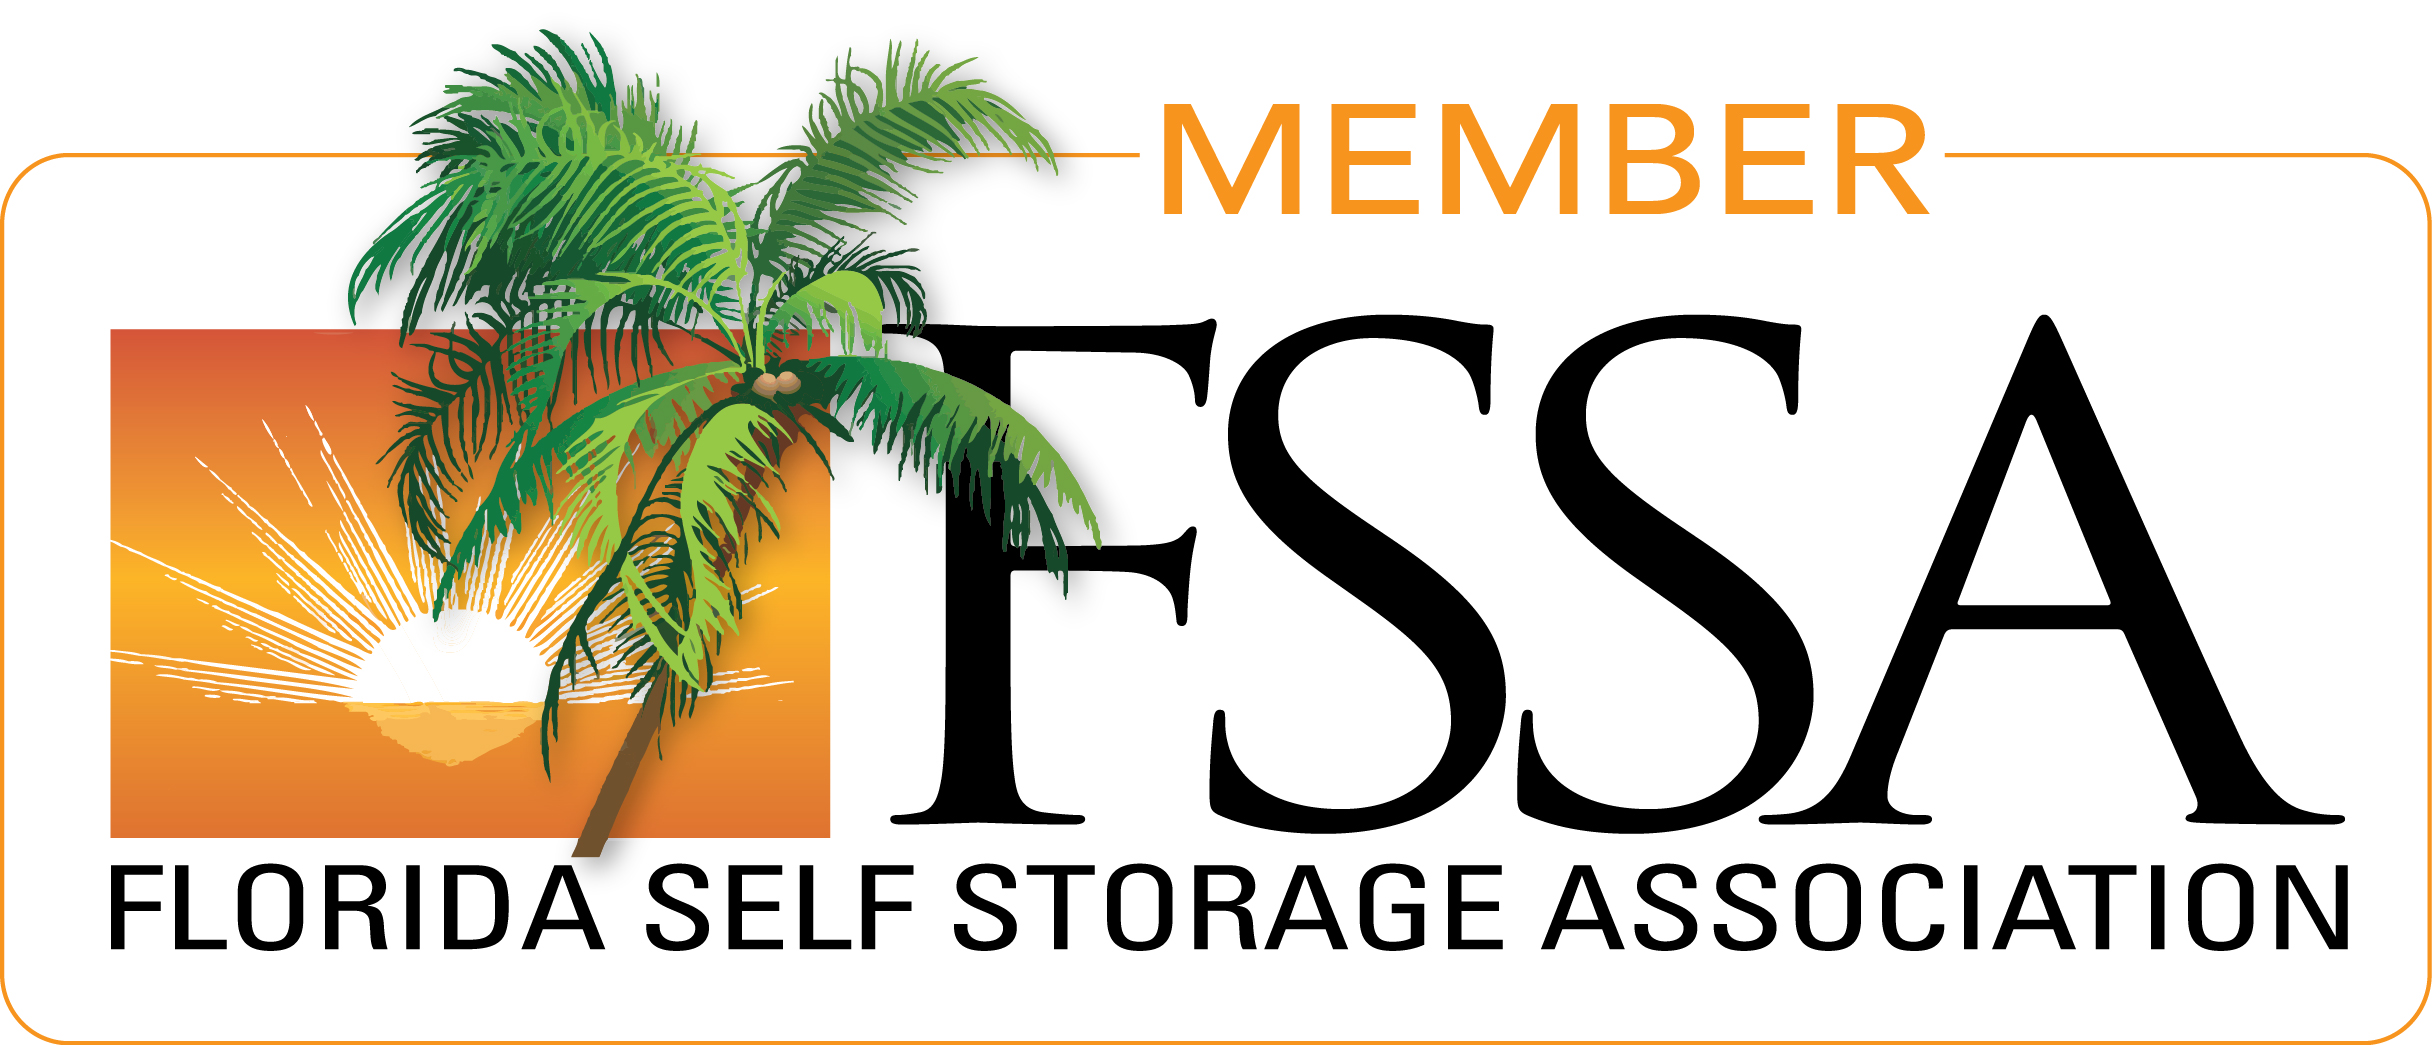 Florida Self Storage Association, FSSA